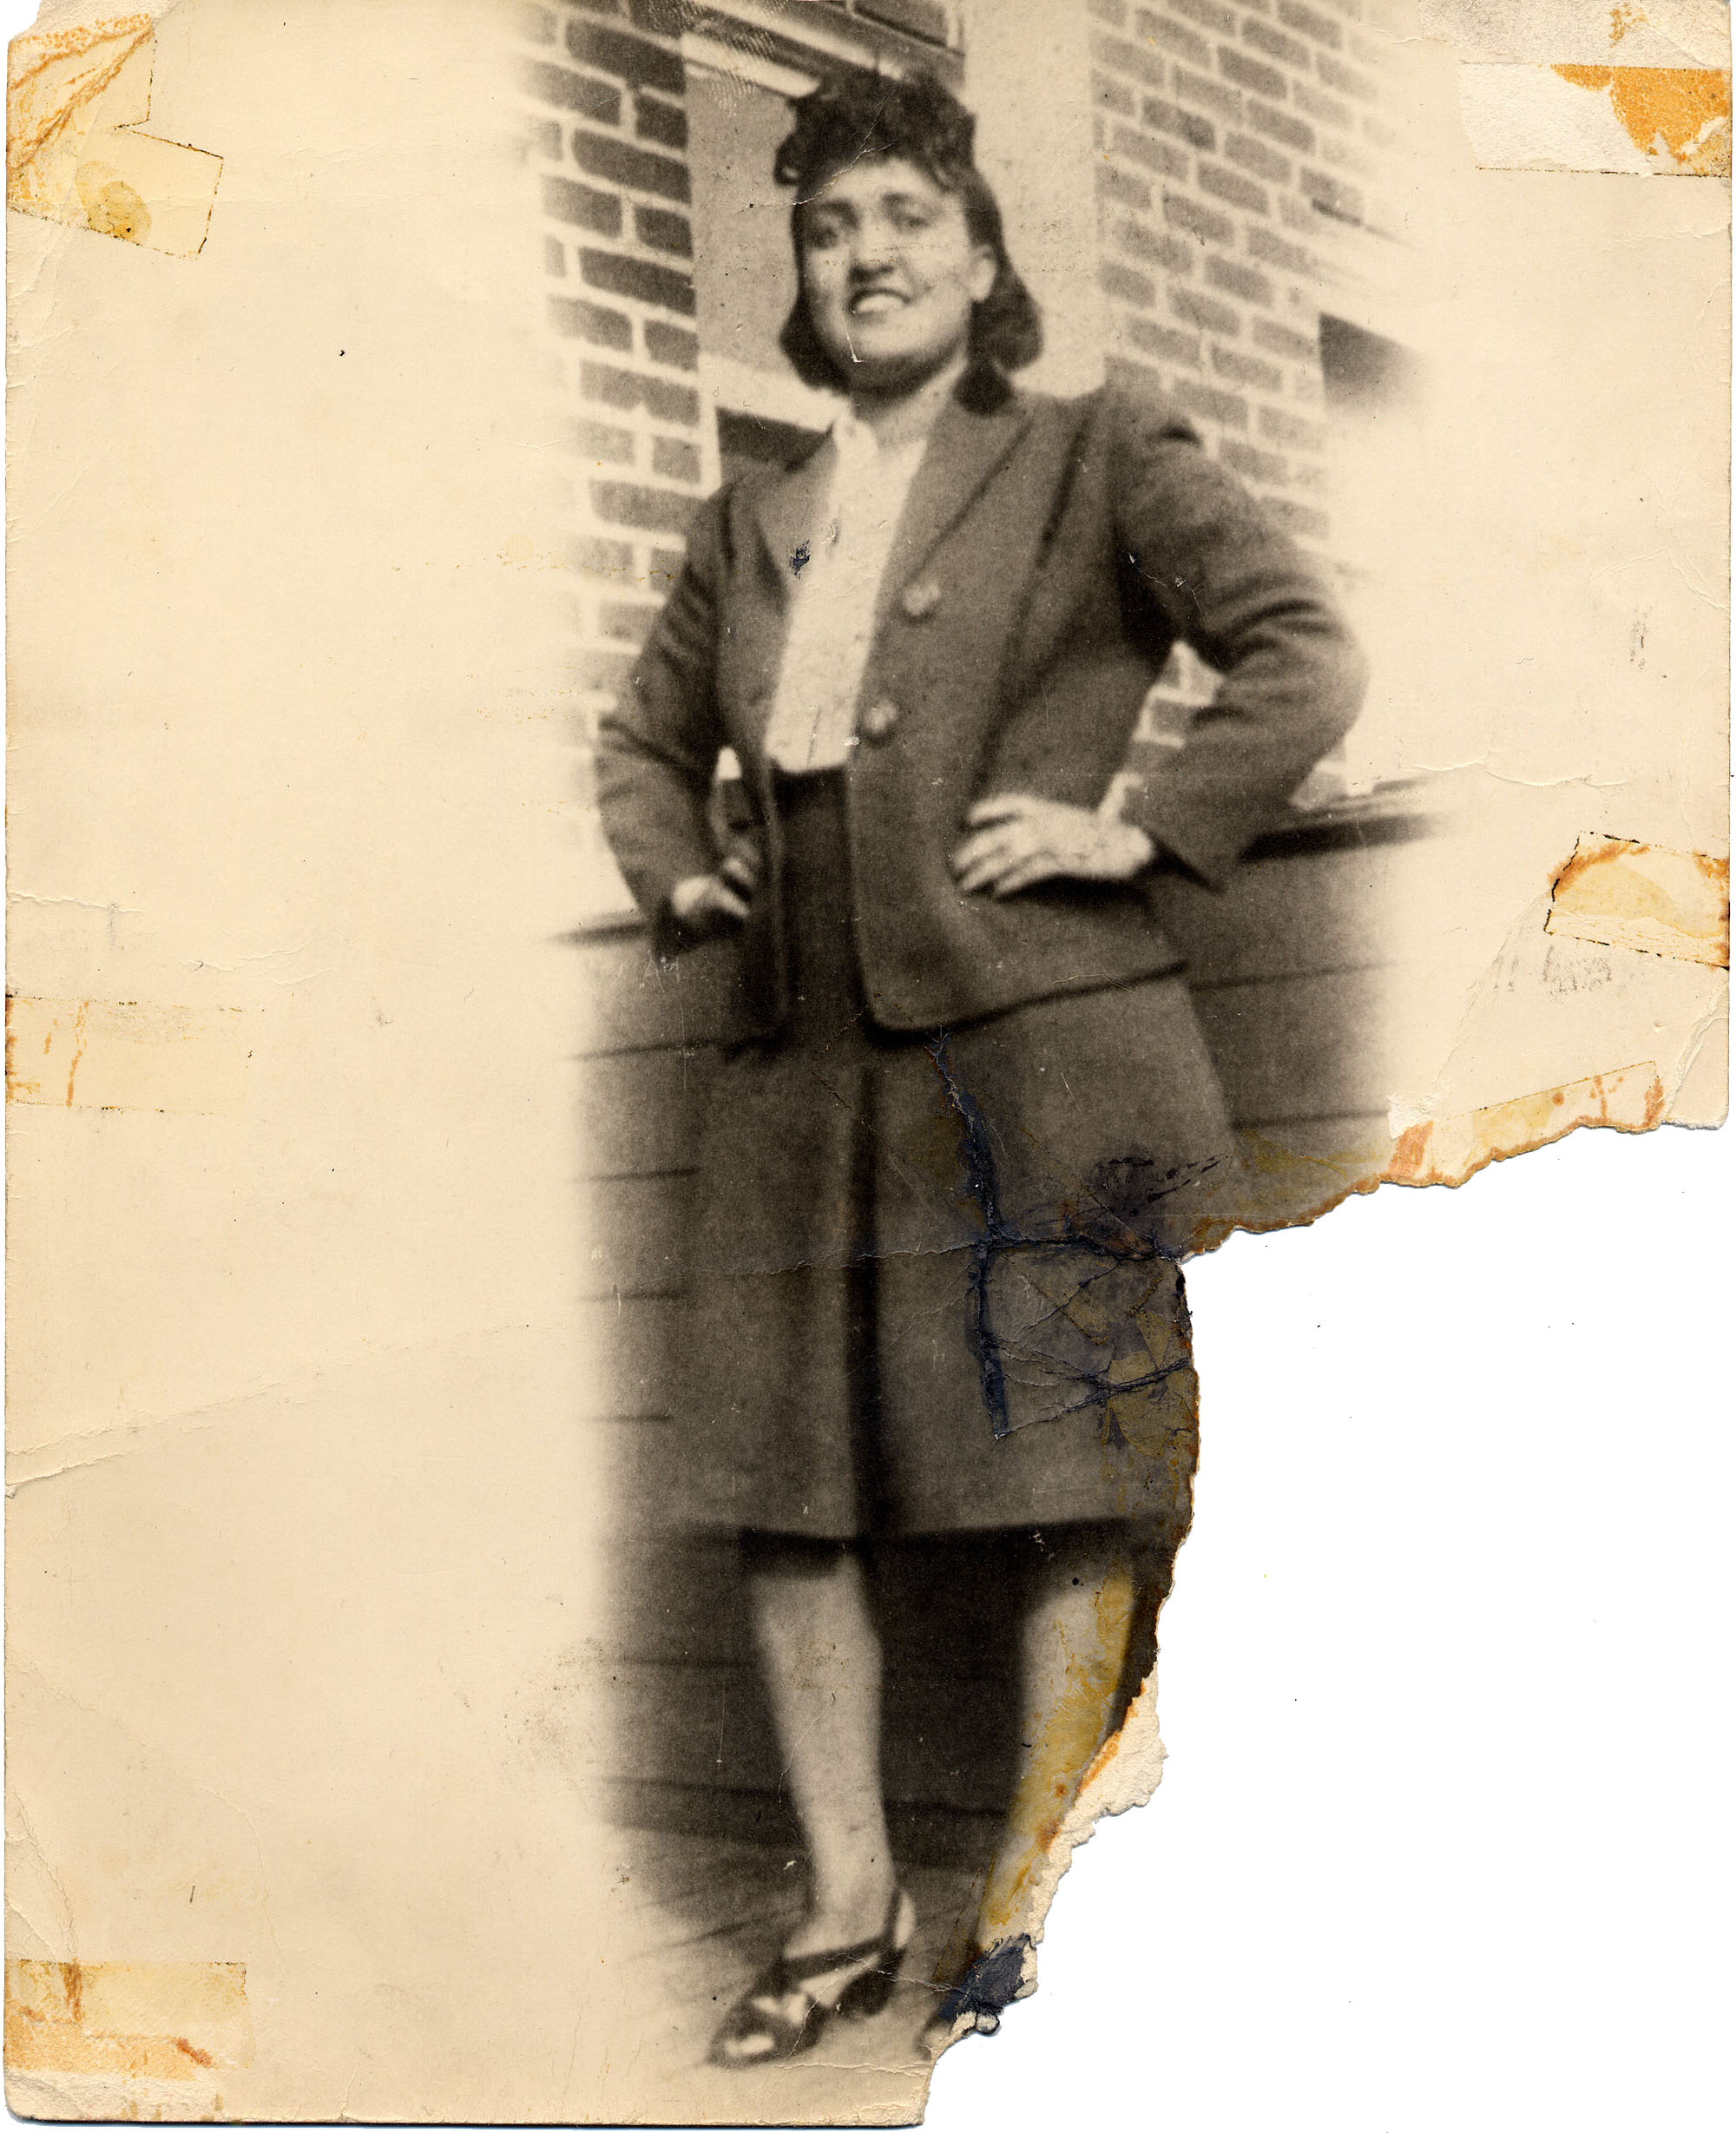 Image of Henrietta Lacks via  The History Channel